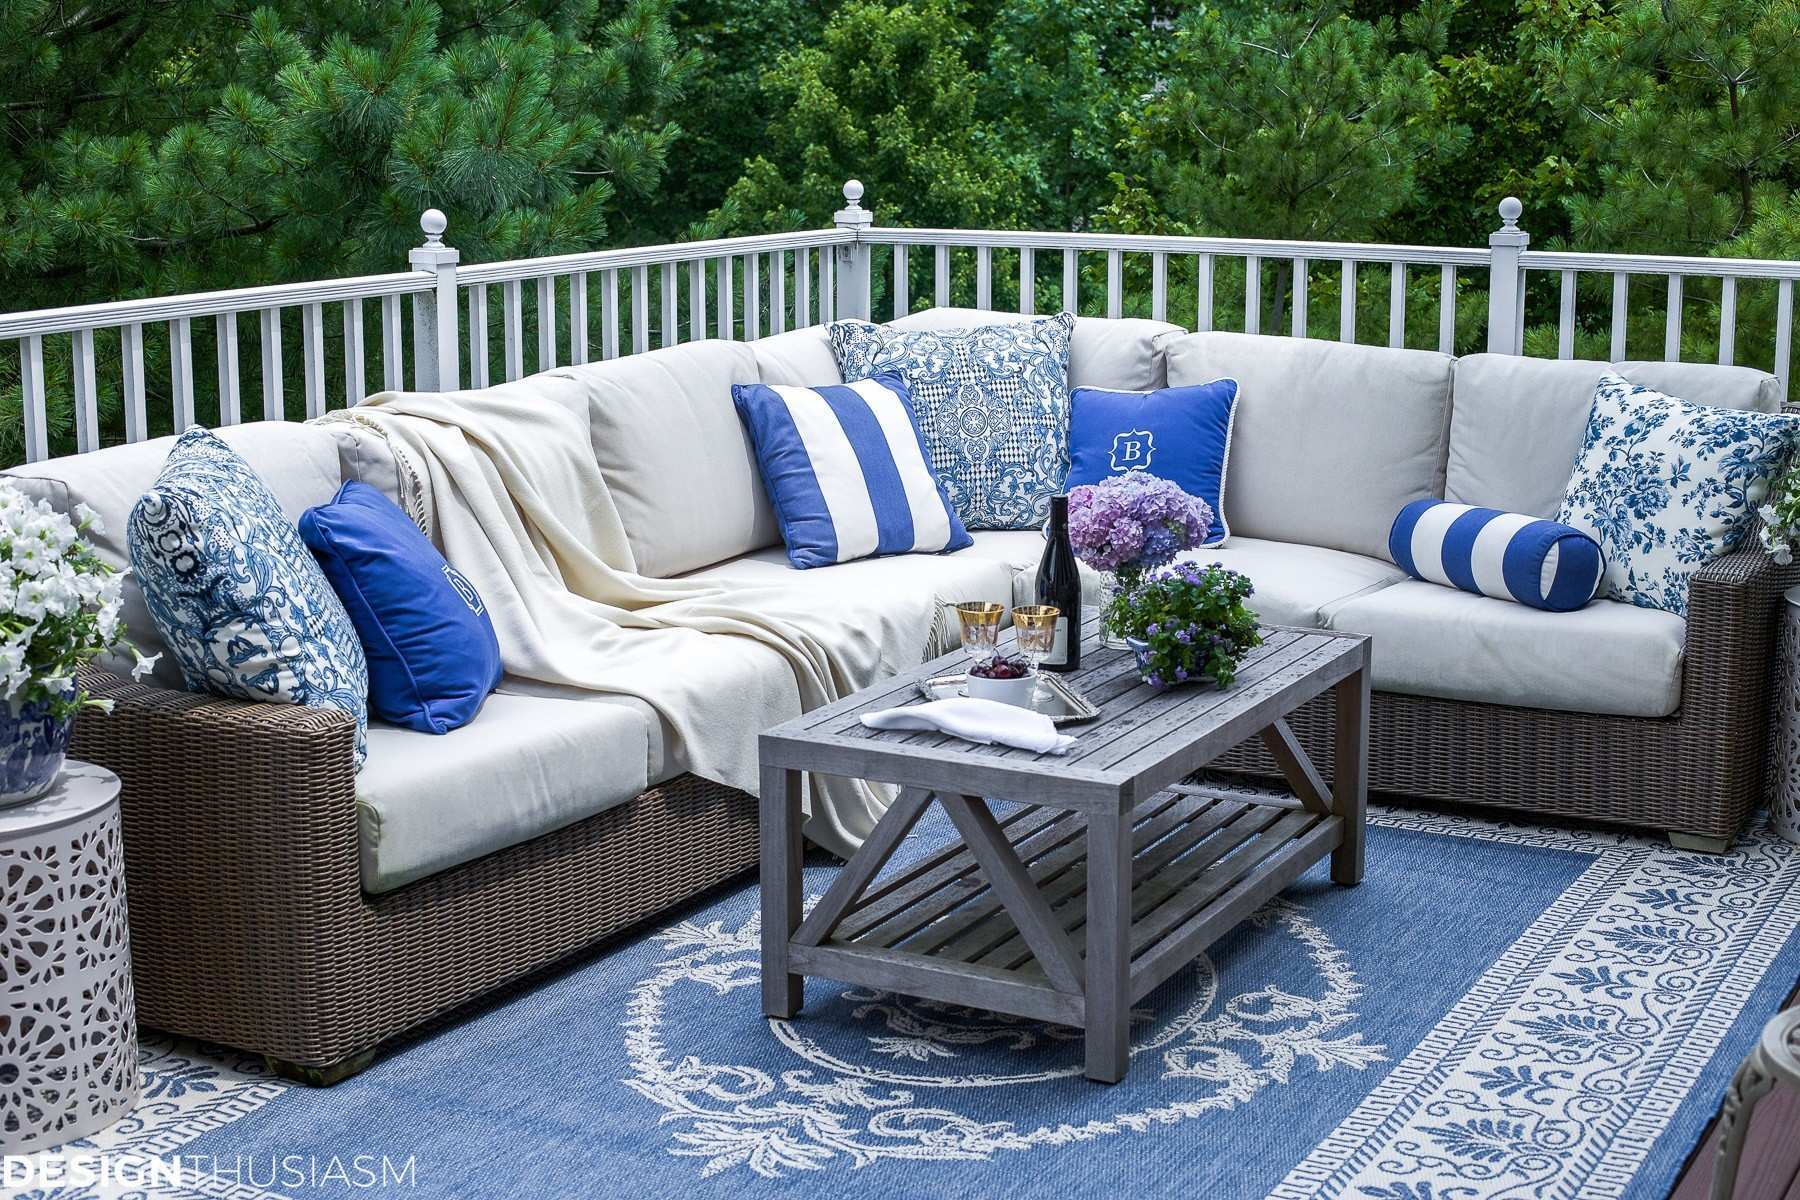 Home Design Outdoor Patio Decorating Ideas Awesome Outdoor Patio